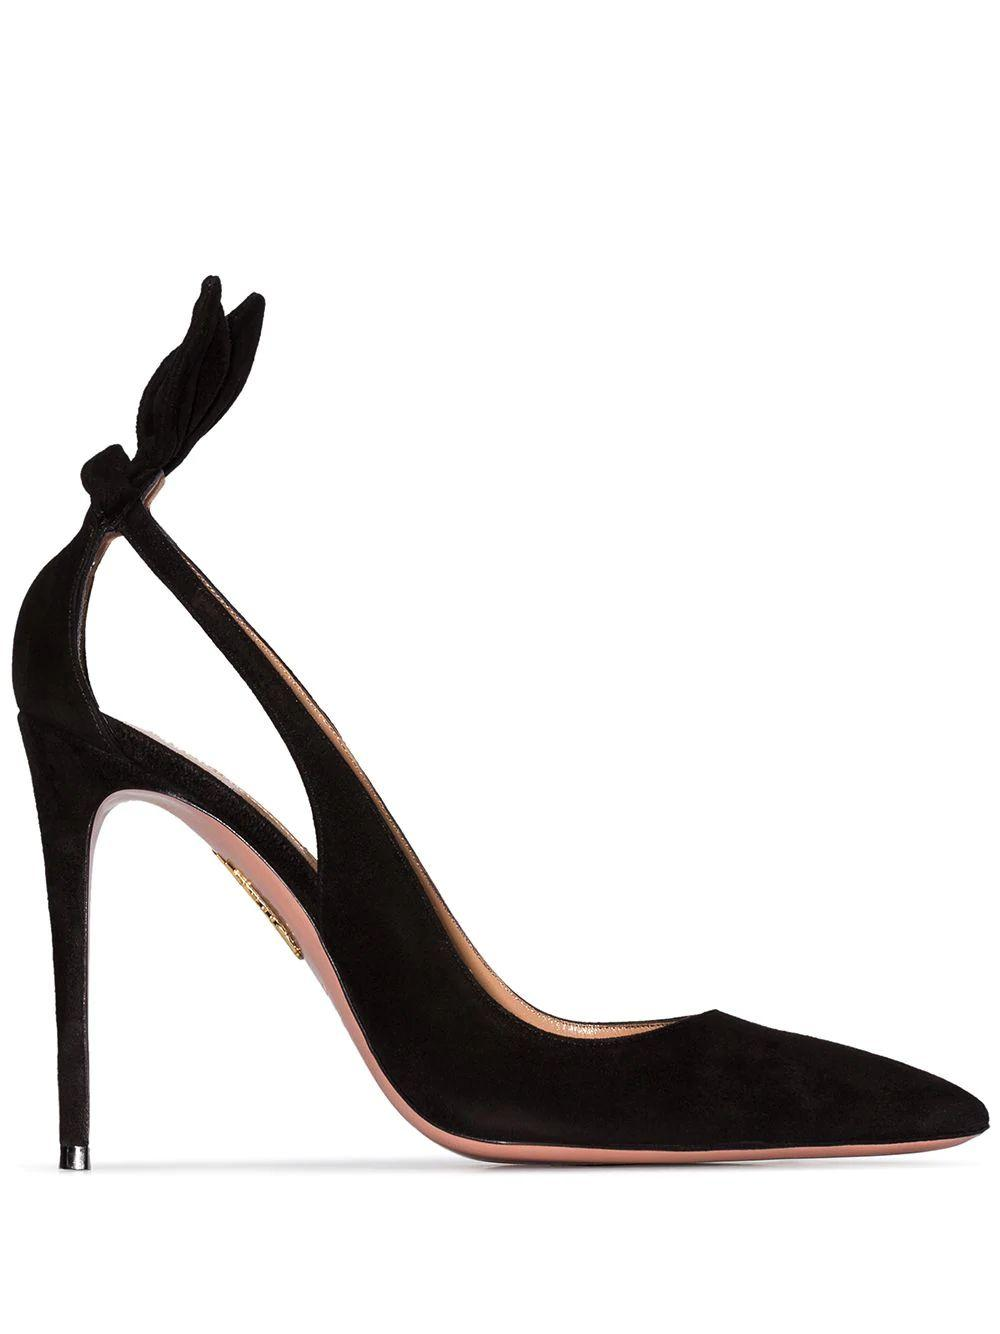 Deneuve 105mm  Suede Pump with Cutouts